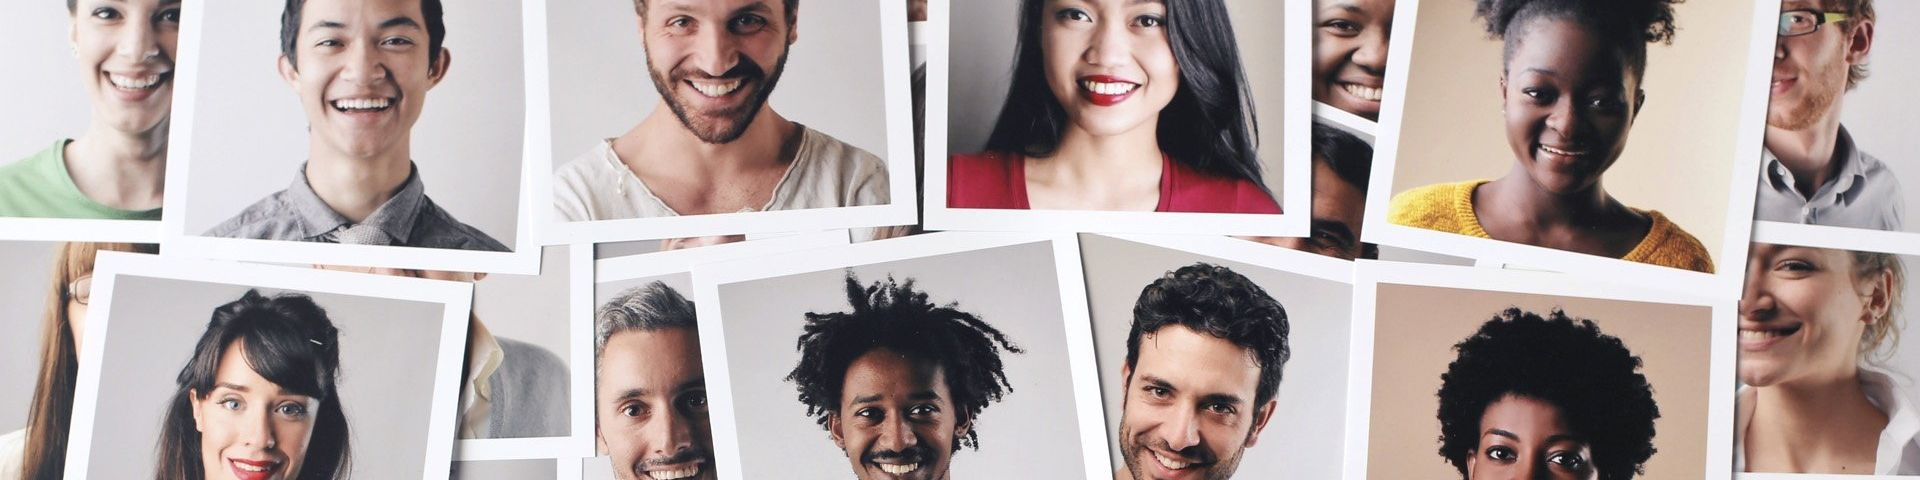 A selection of 'polaroid' style photos of smiling young people.